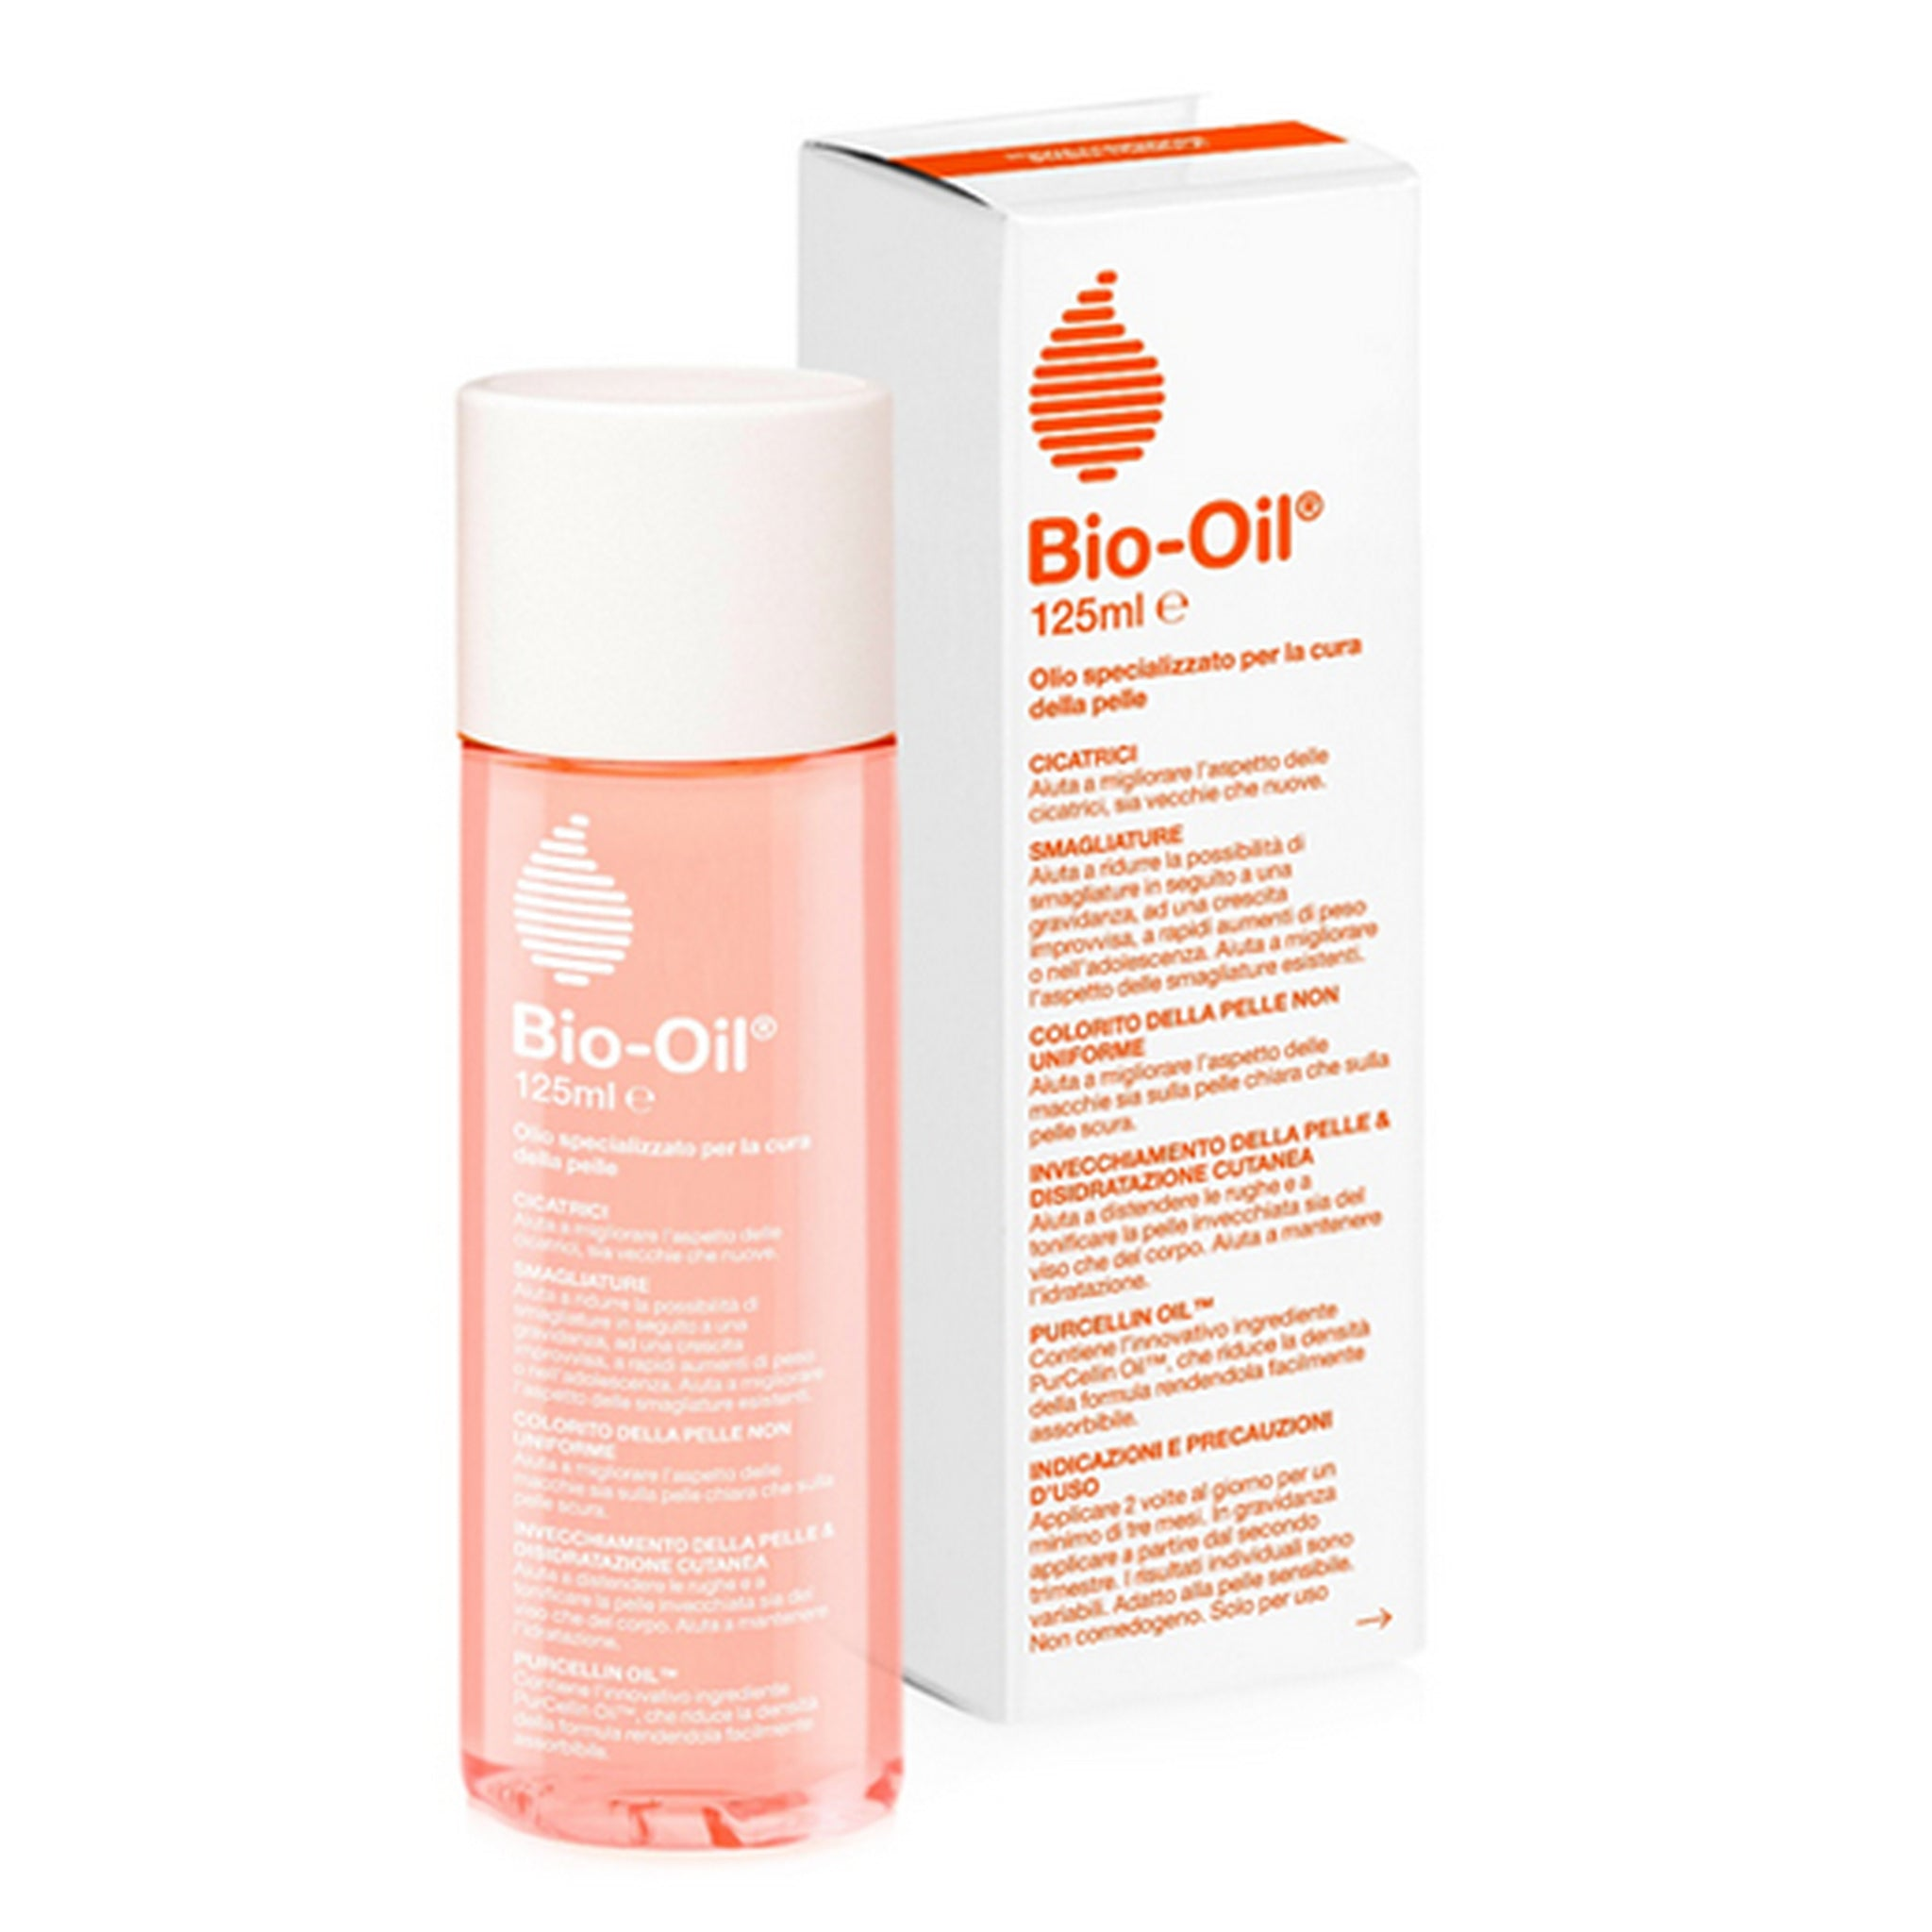 BIO-OIL OLIO DERMATOLOGICO 125ML